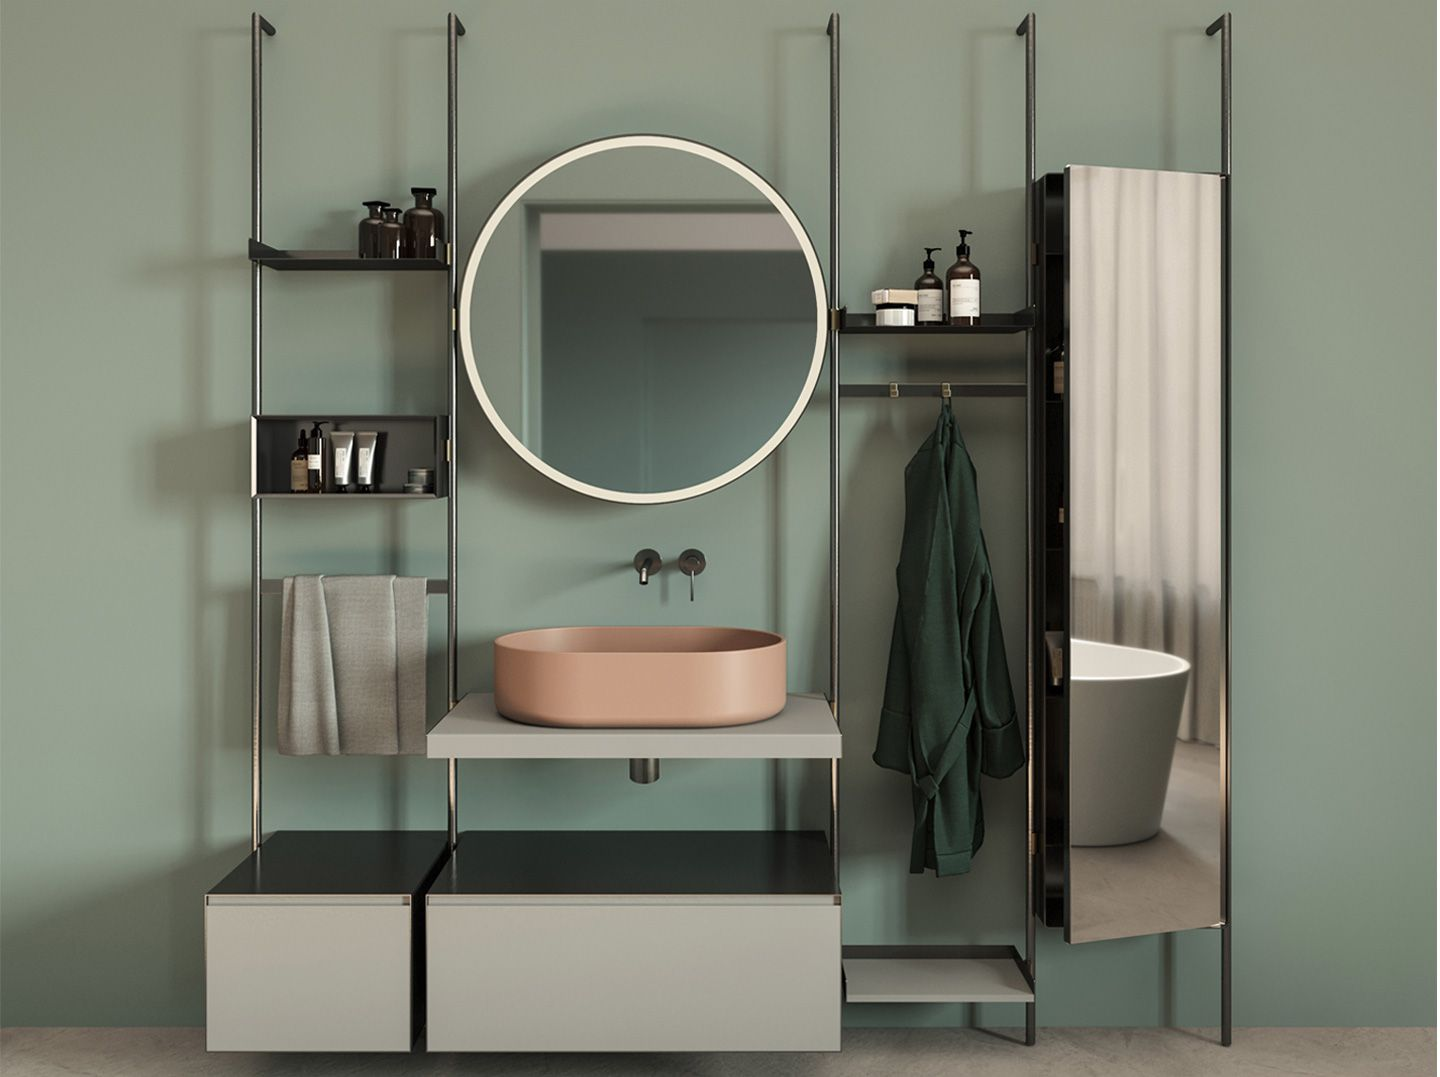 Mobile Lavabo Con Speccio By Nic Design In 2020